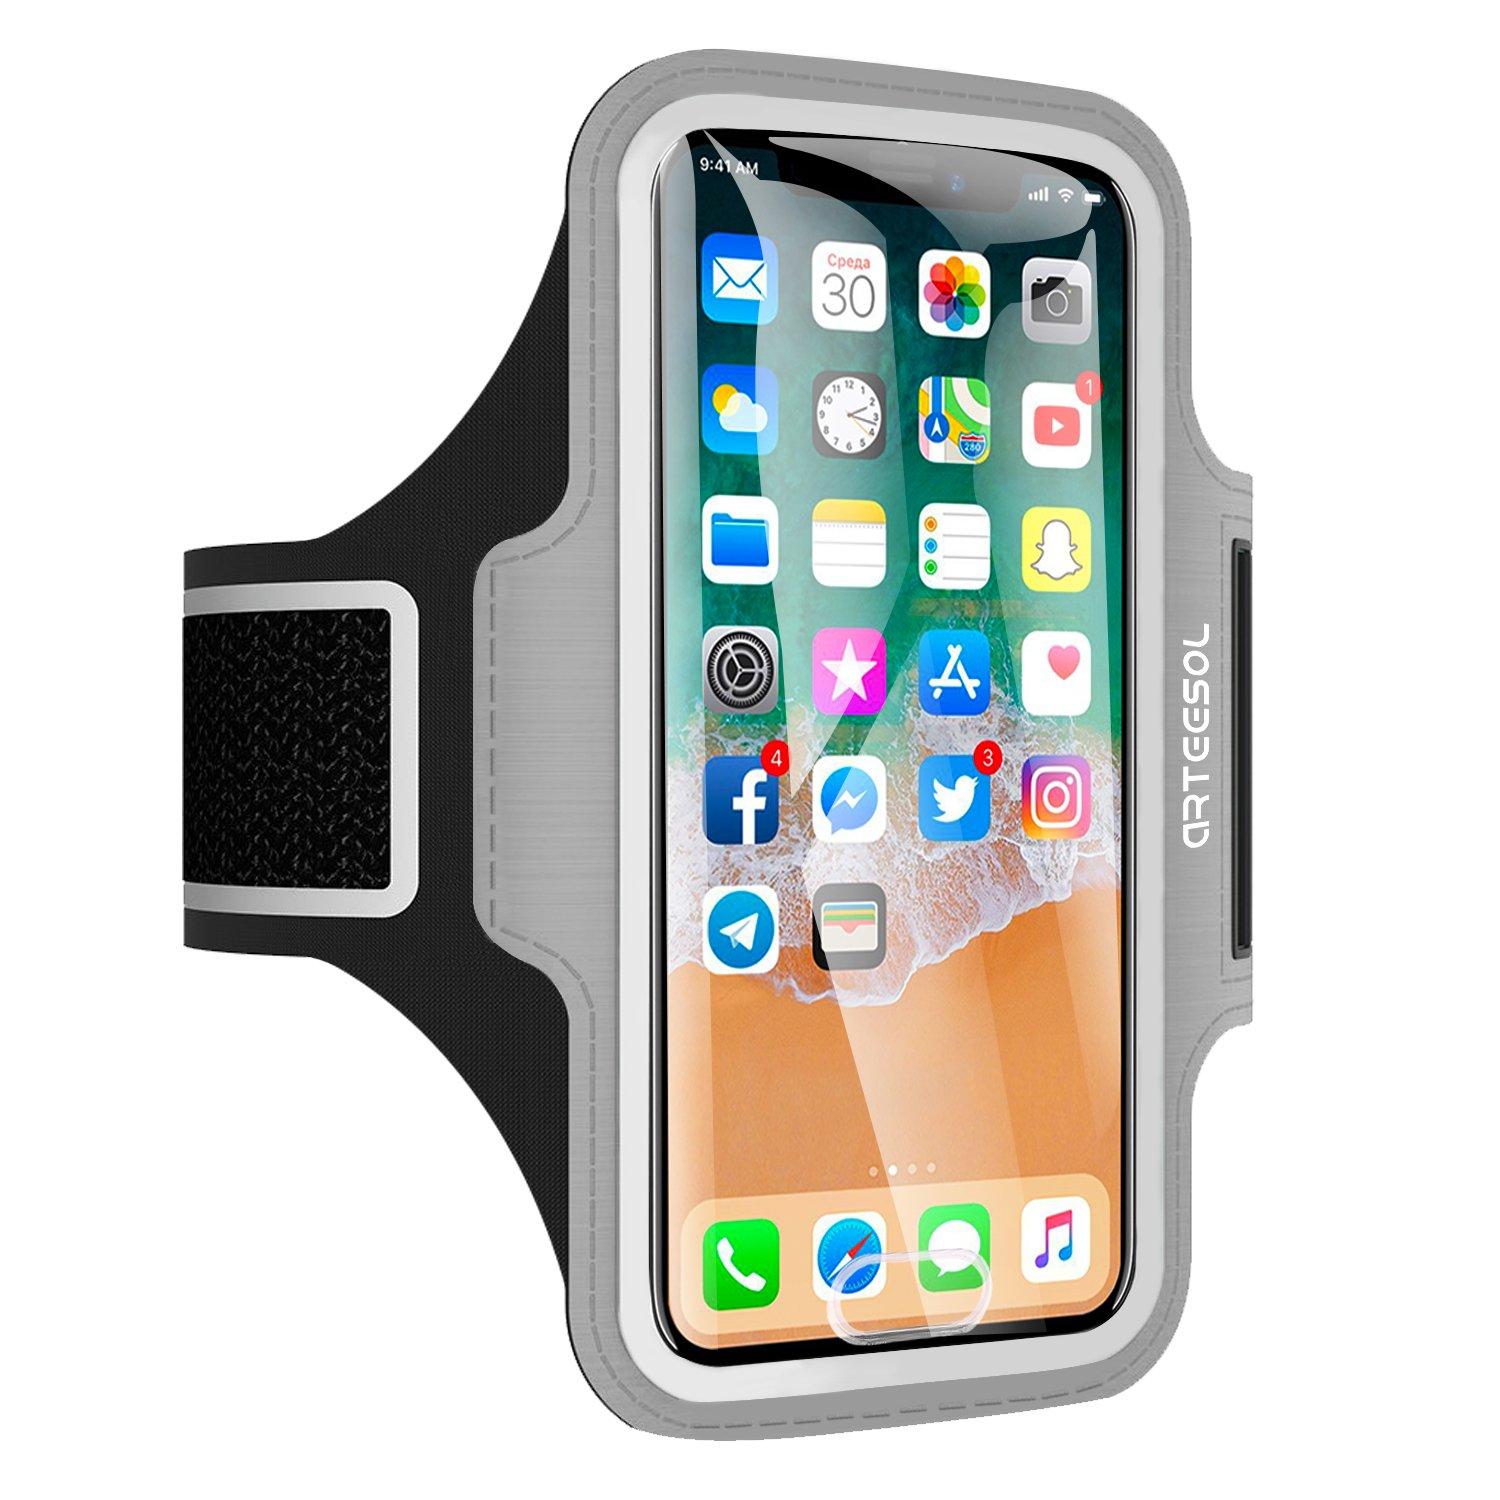 iPhone X Armband, ARTEESOL Sweat Proof Cell Phone Holder 5.2 Inch with Fingerprint Touch for iPhone X/8/7/6/5, Galaxy S7/S6/S4, Note 4, LG, Moto, Phone Pouch for Running Workout (Gray)